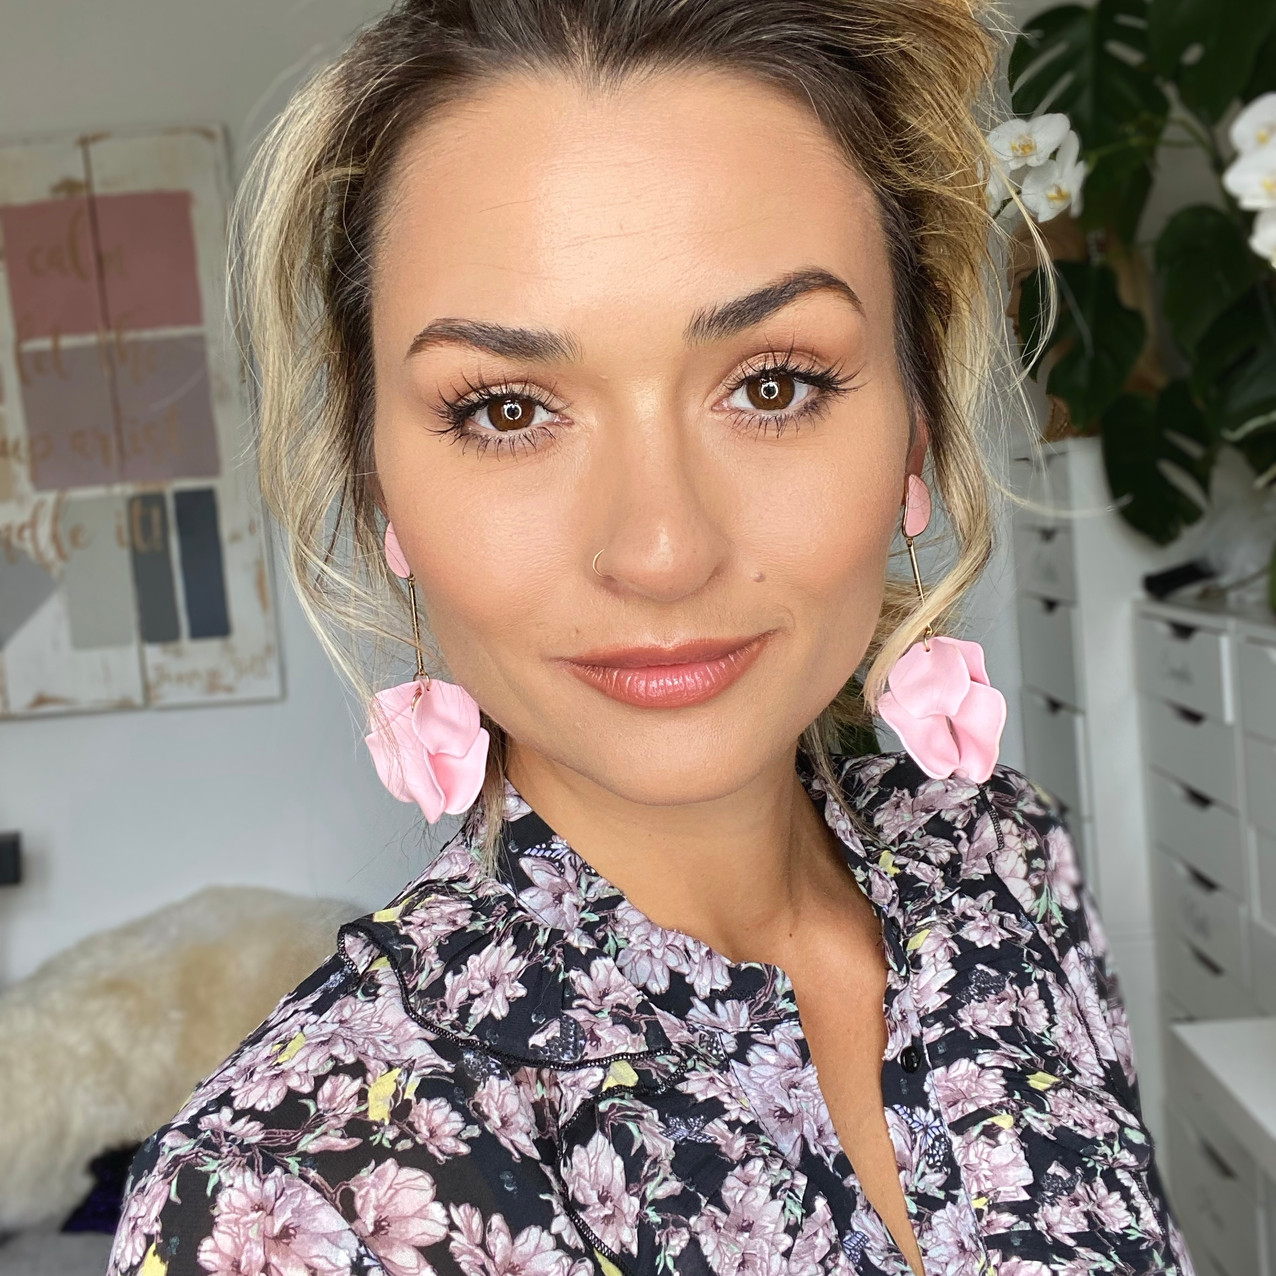 SUMMER 2020 BEAUTY TRENDS, BIG LASH TREND, OVER THE TOP LASHES TREND, MAKEUP TREND 2020.